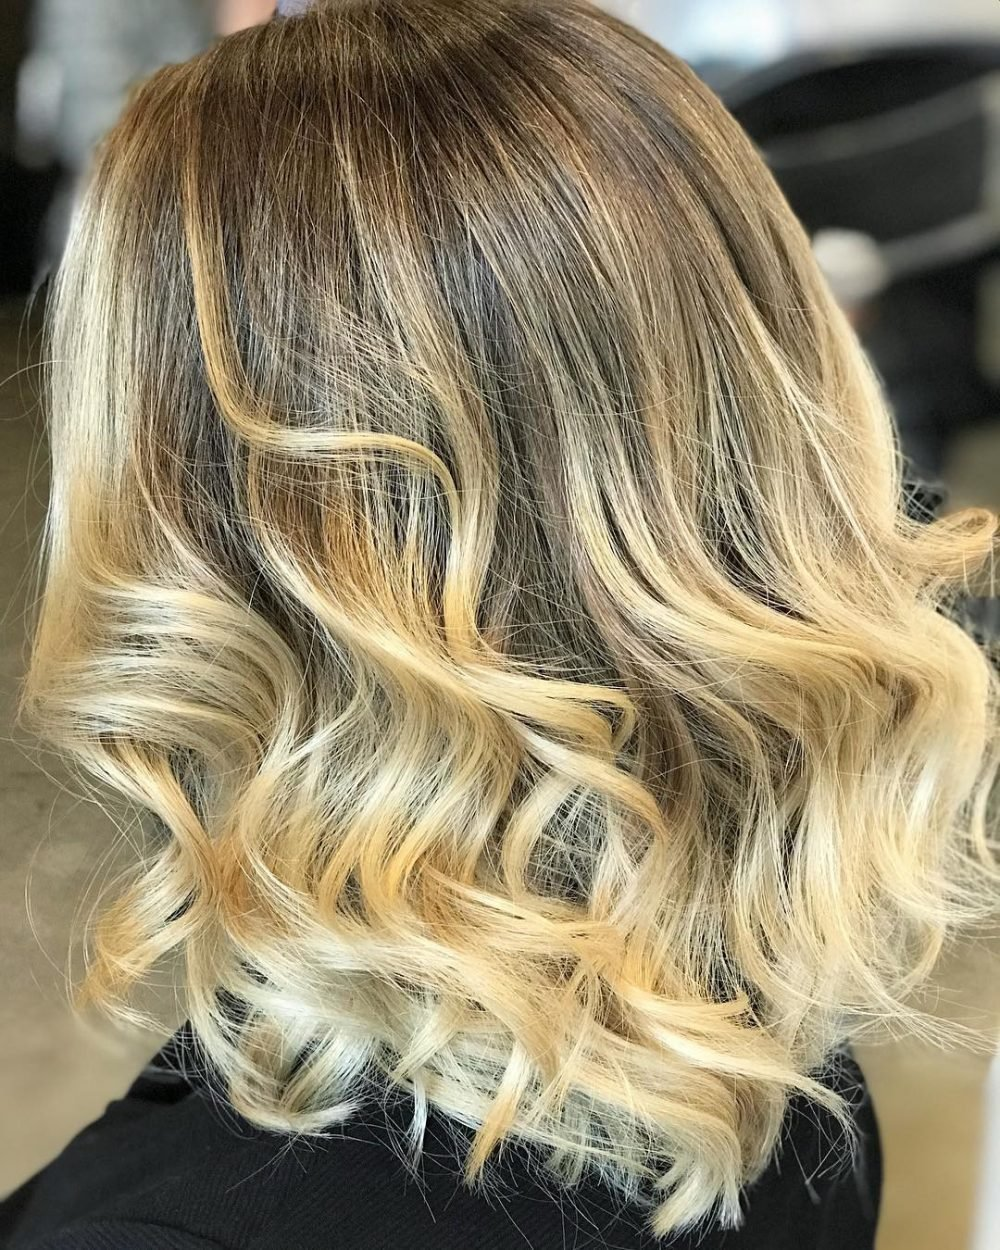 New 36 Curled Hairstyles Tending In 2019 So Grab Your Hair Ideas With Pictures